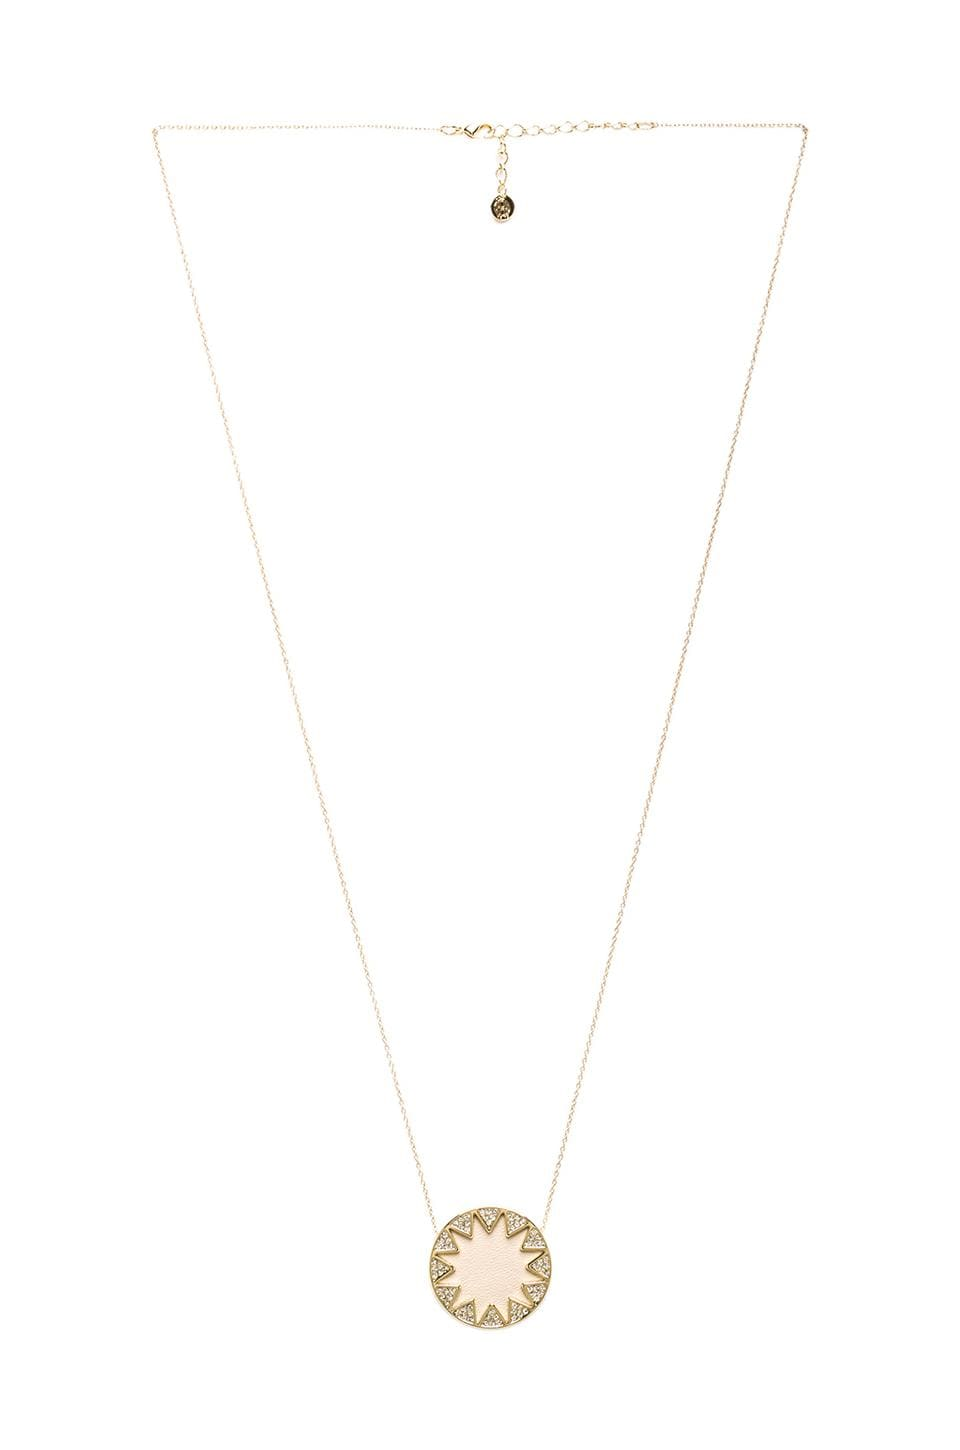 House of Harlow Medium Pave Sunburst Necklace in Gold Tone Cream